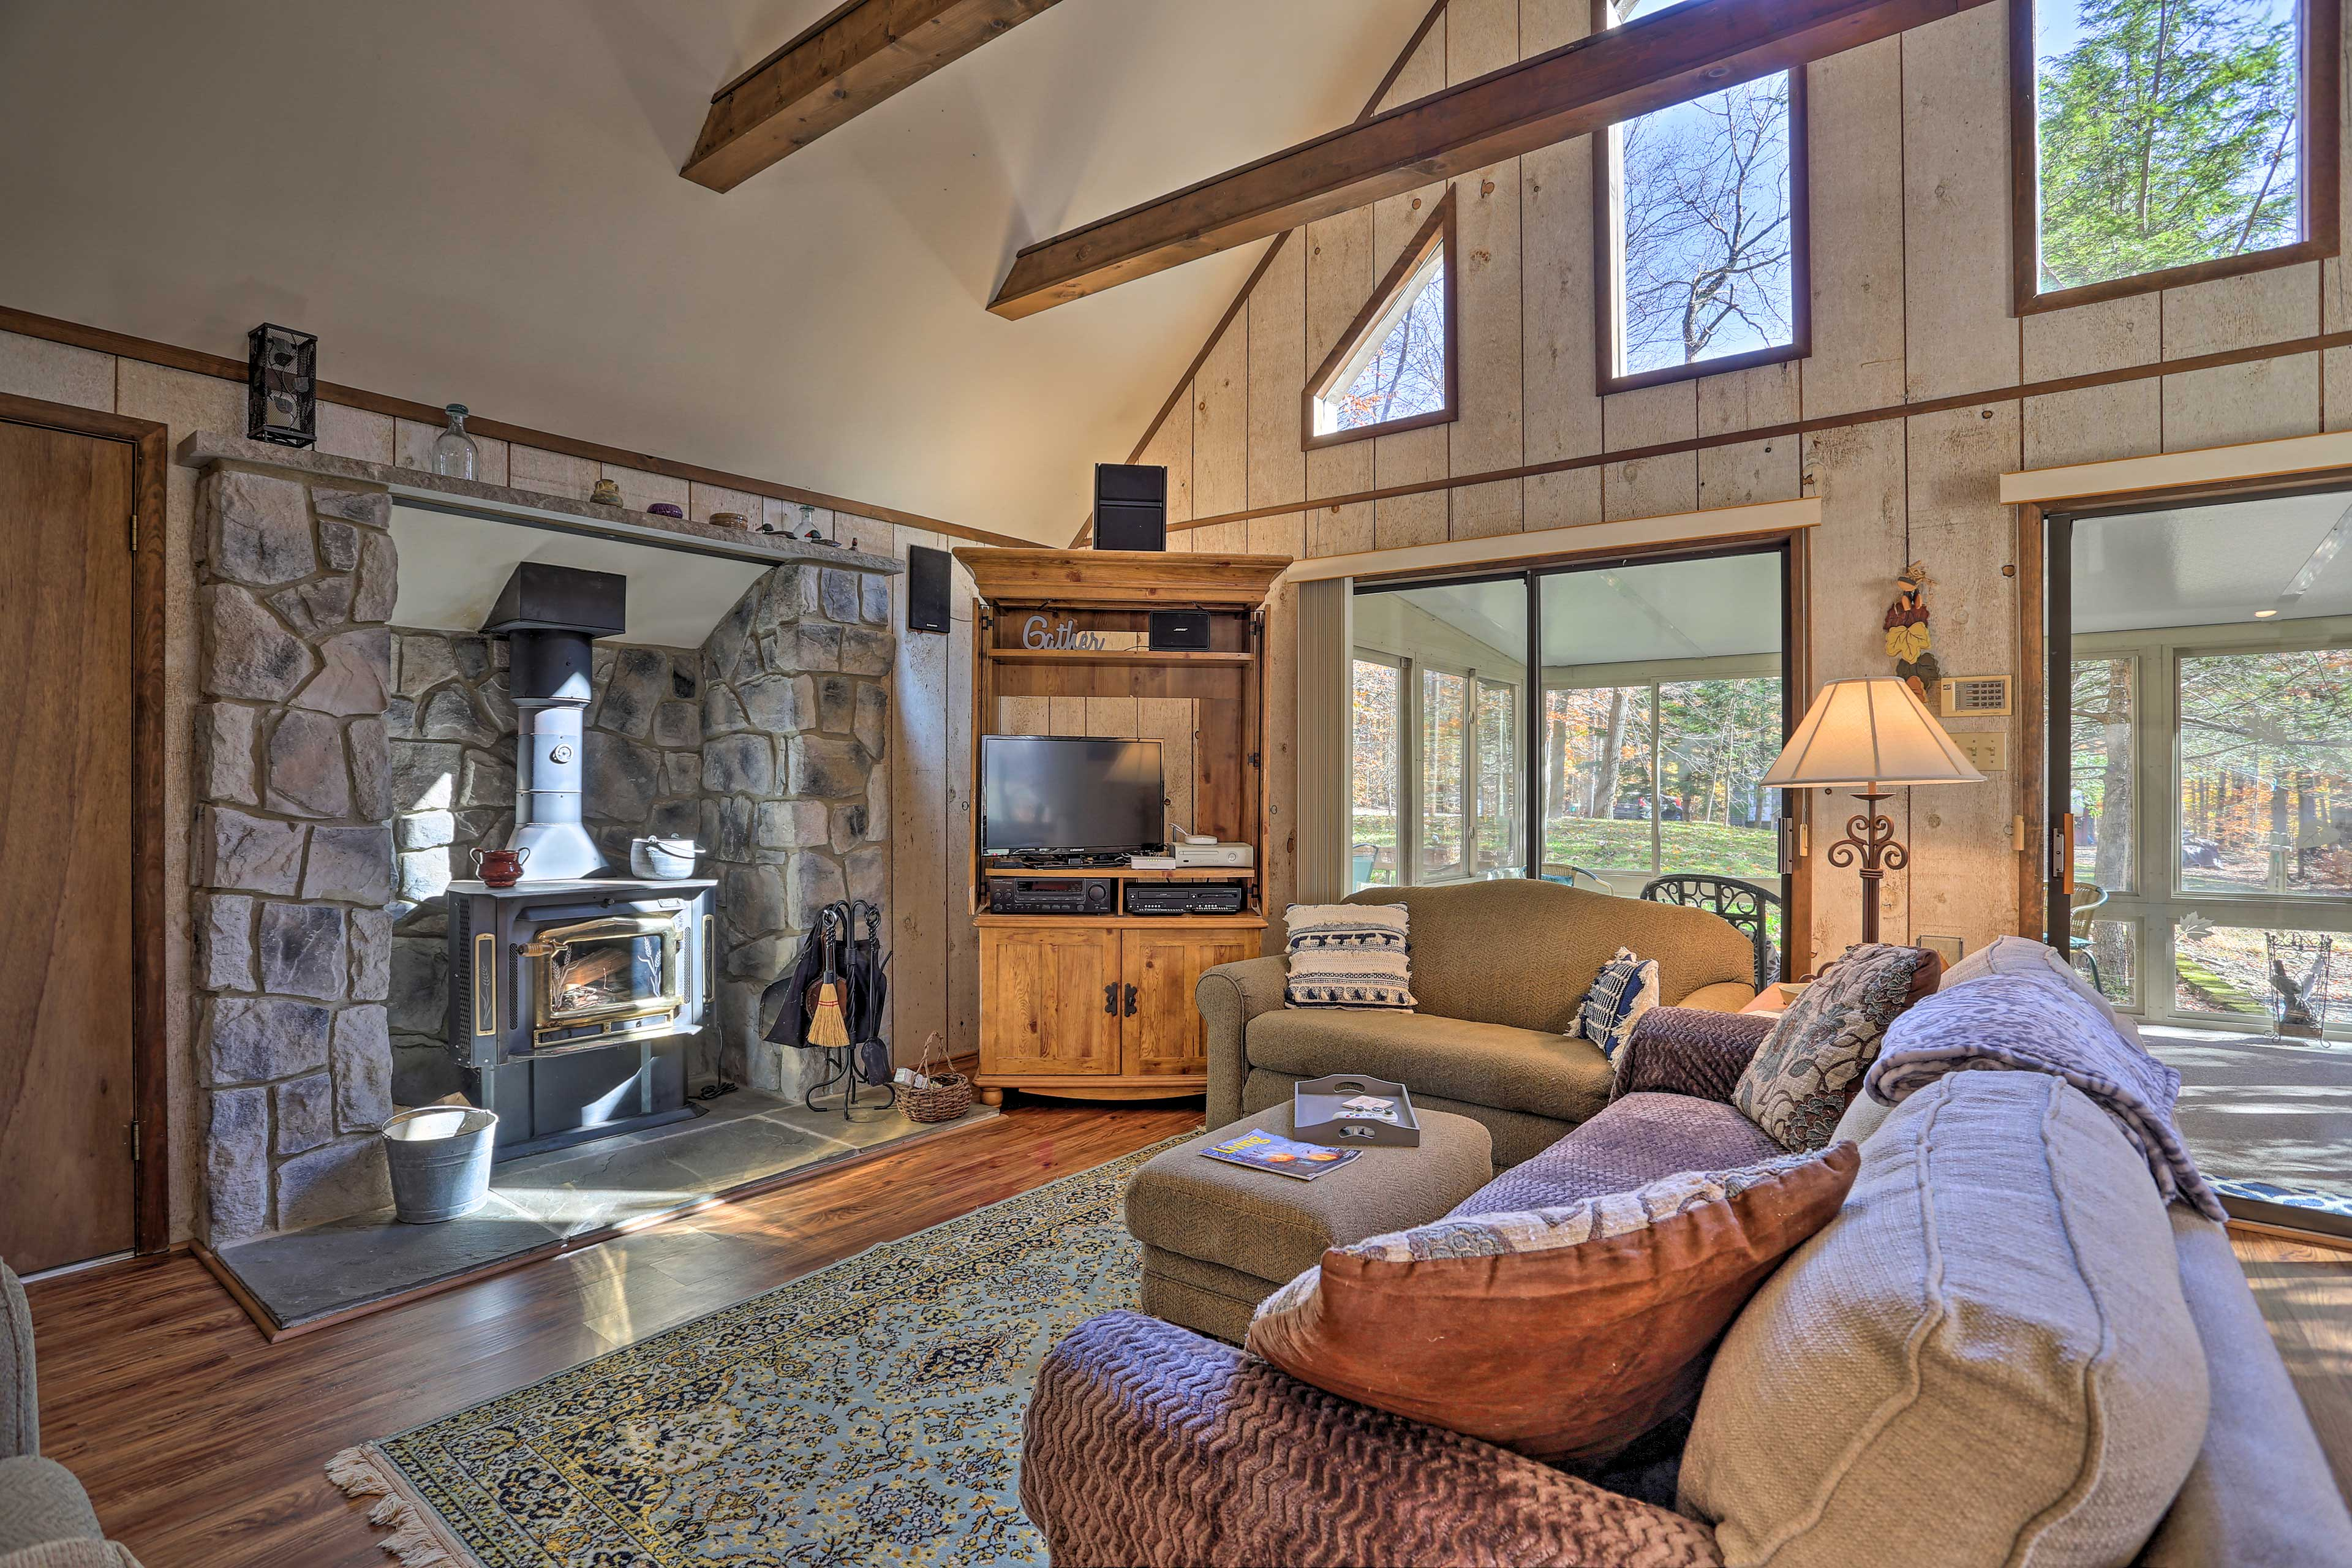 This 3-bed, 2-bath Pocono Lake retreat offers all the comforts of home.